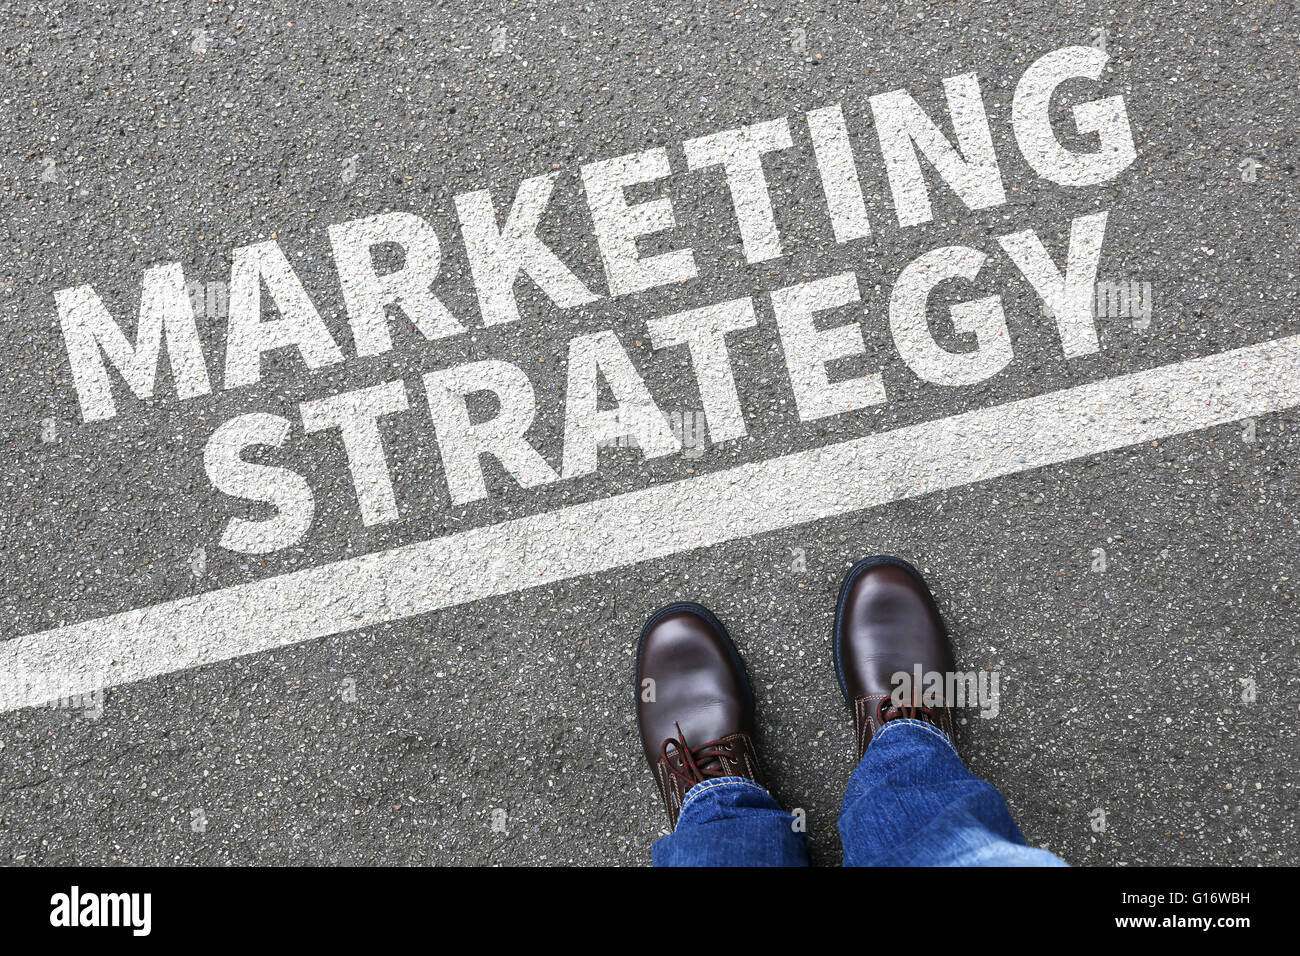 Marketing strategy sale sales advertisement business concept success successful branding - Stock Image